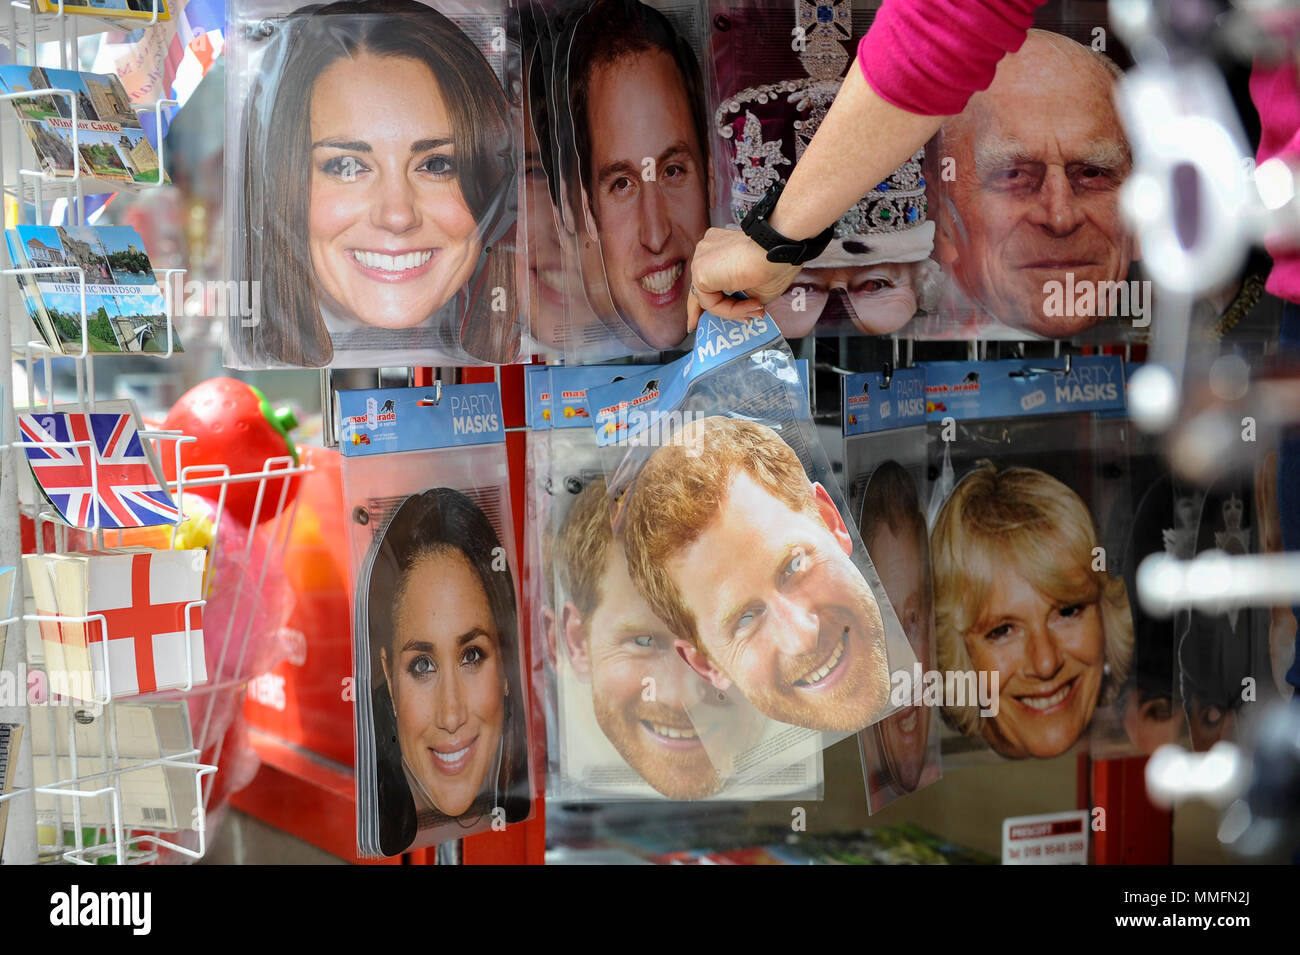 49d45d2863b Face masks featuring the Royal Family on display in a souvenir ...